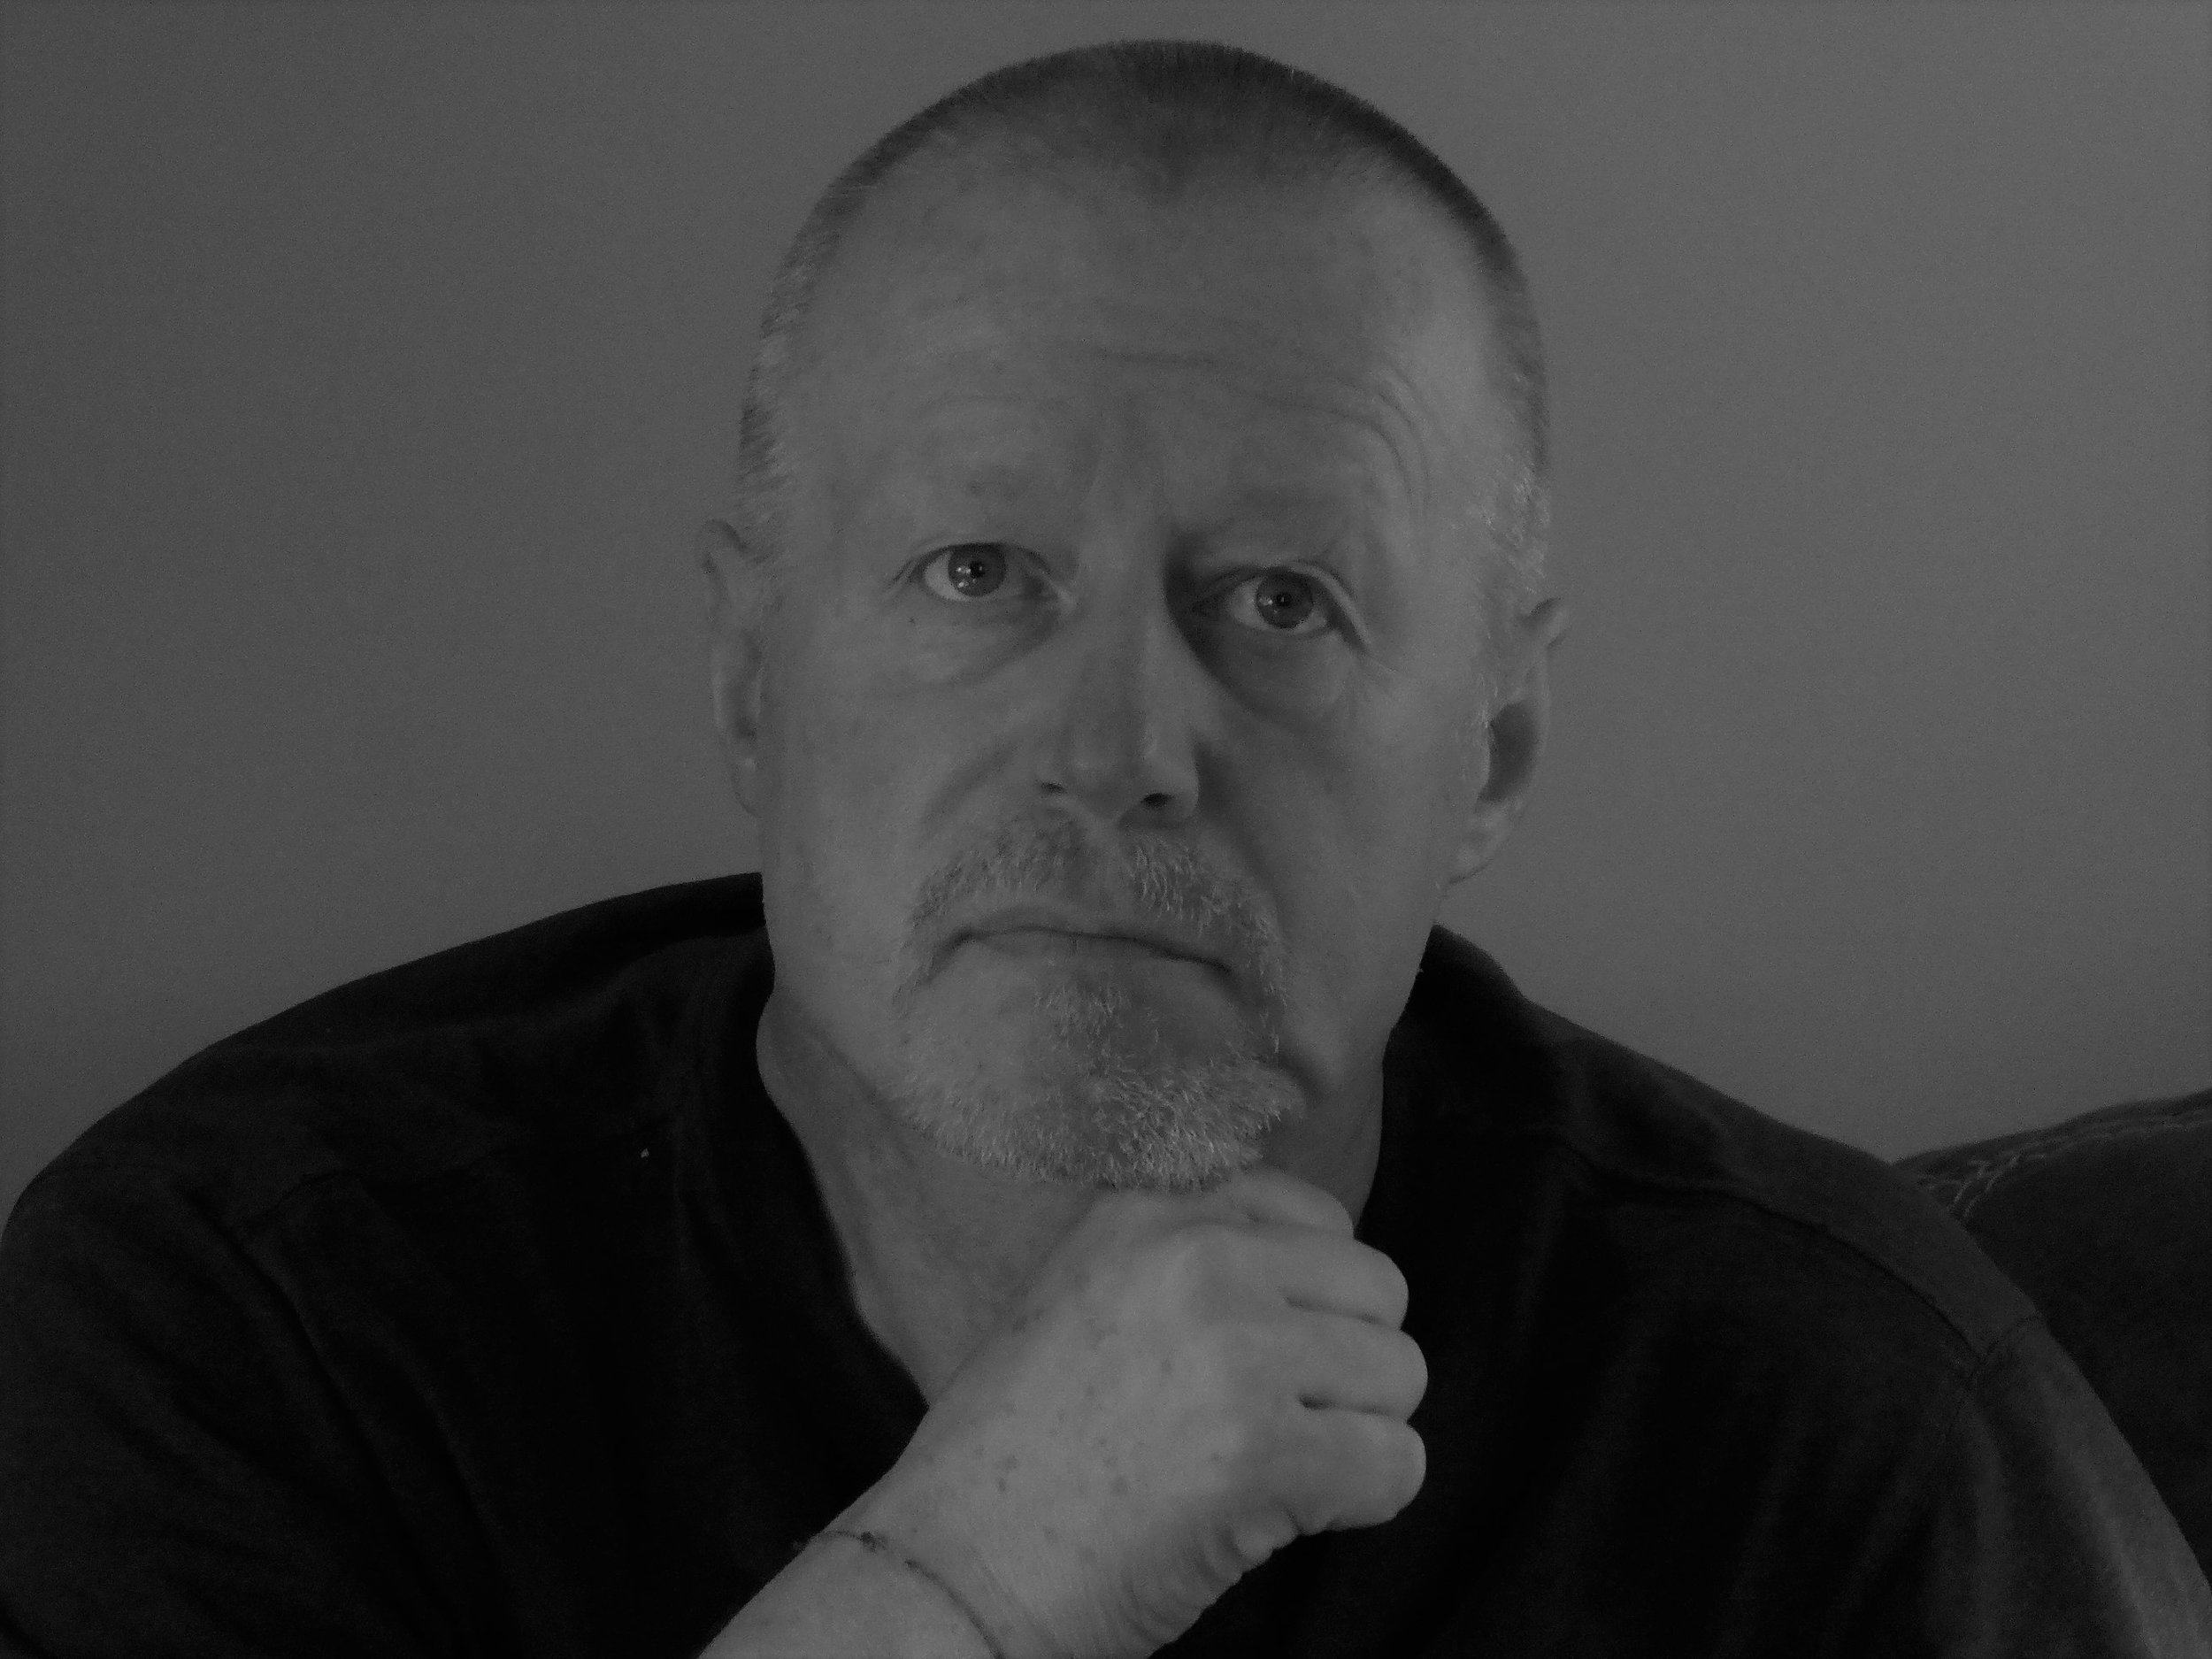 JMcD Looking Up BW 2018 P1010082 - Copy (2).JPG